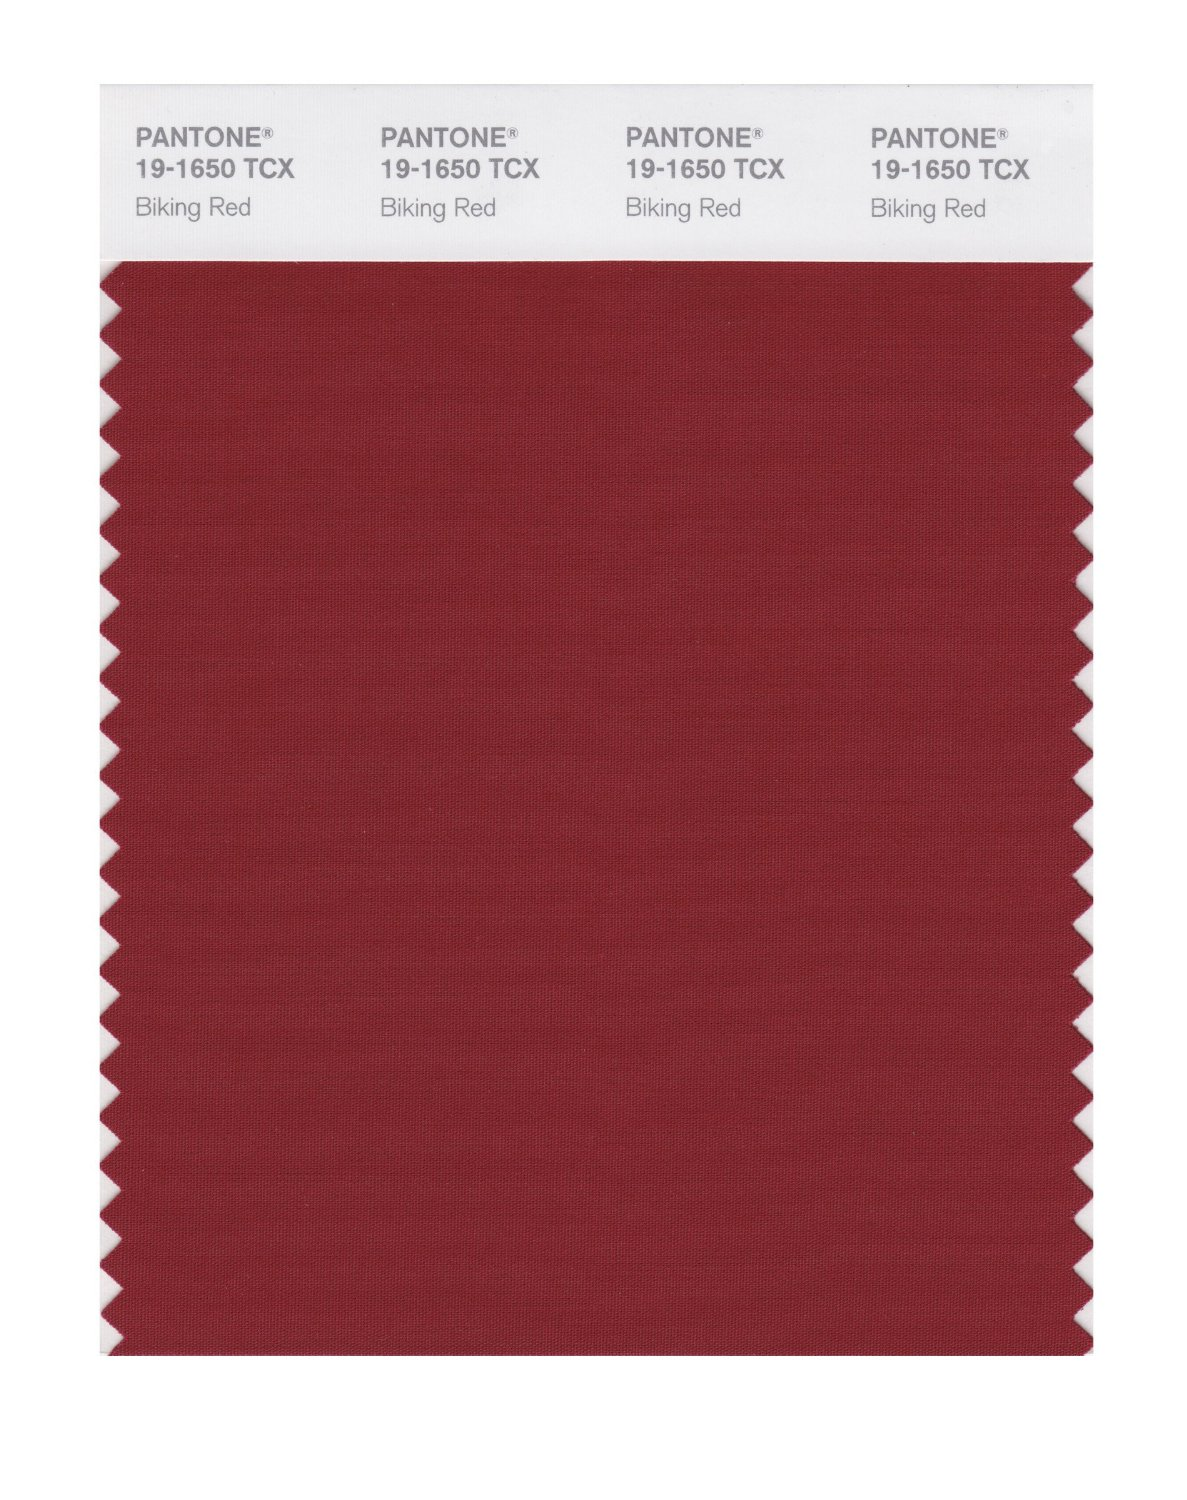 Pantone Smart Swatch 19-1650 Biking Red